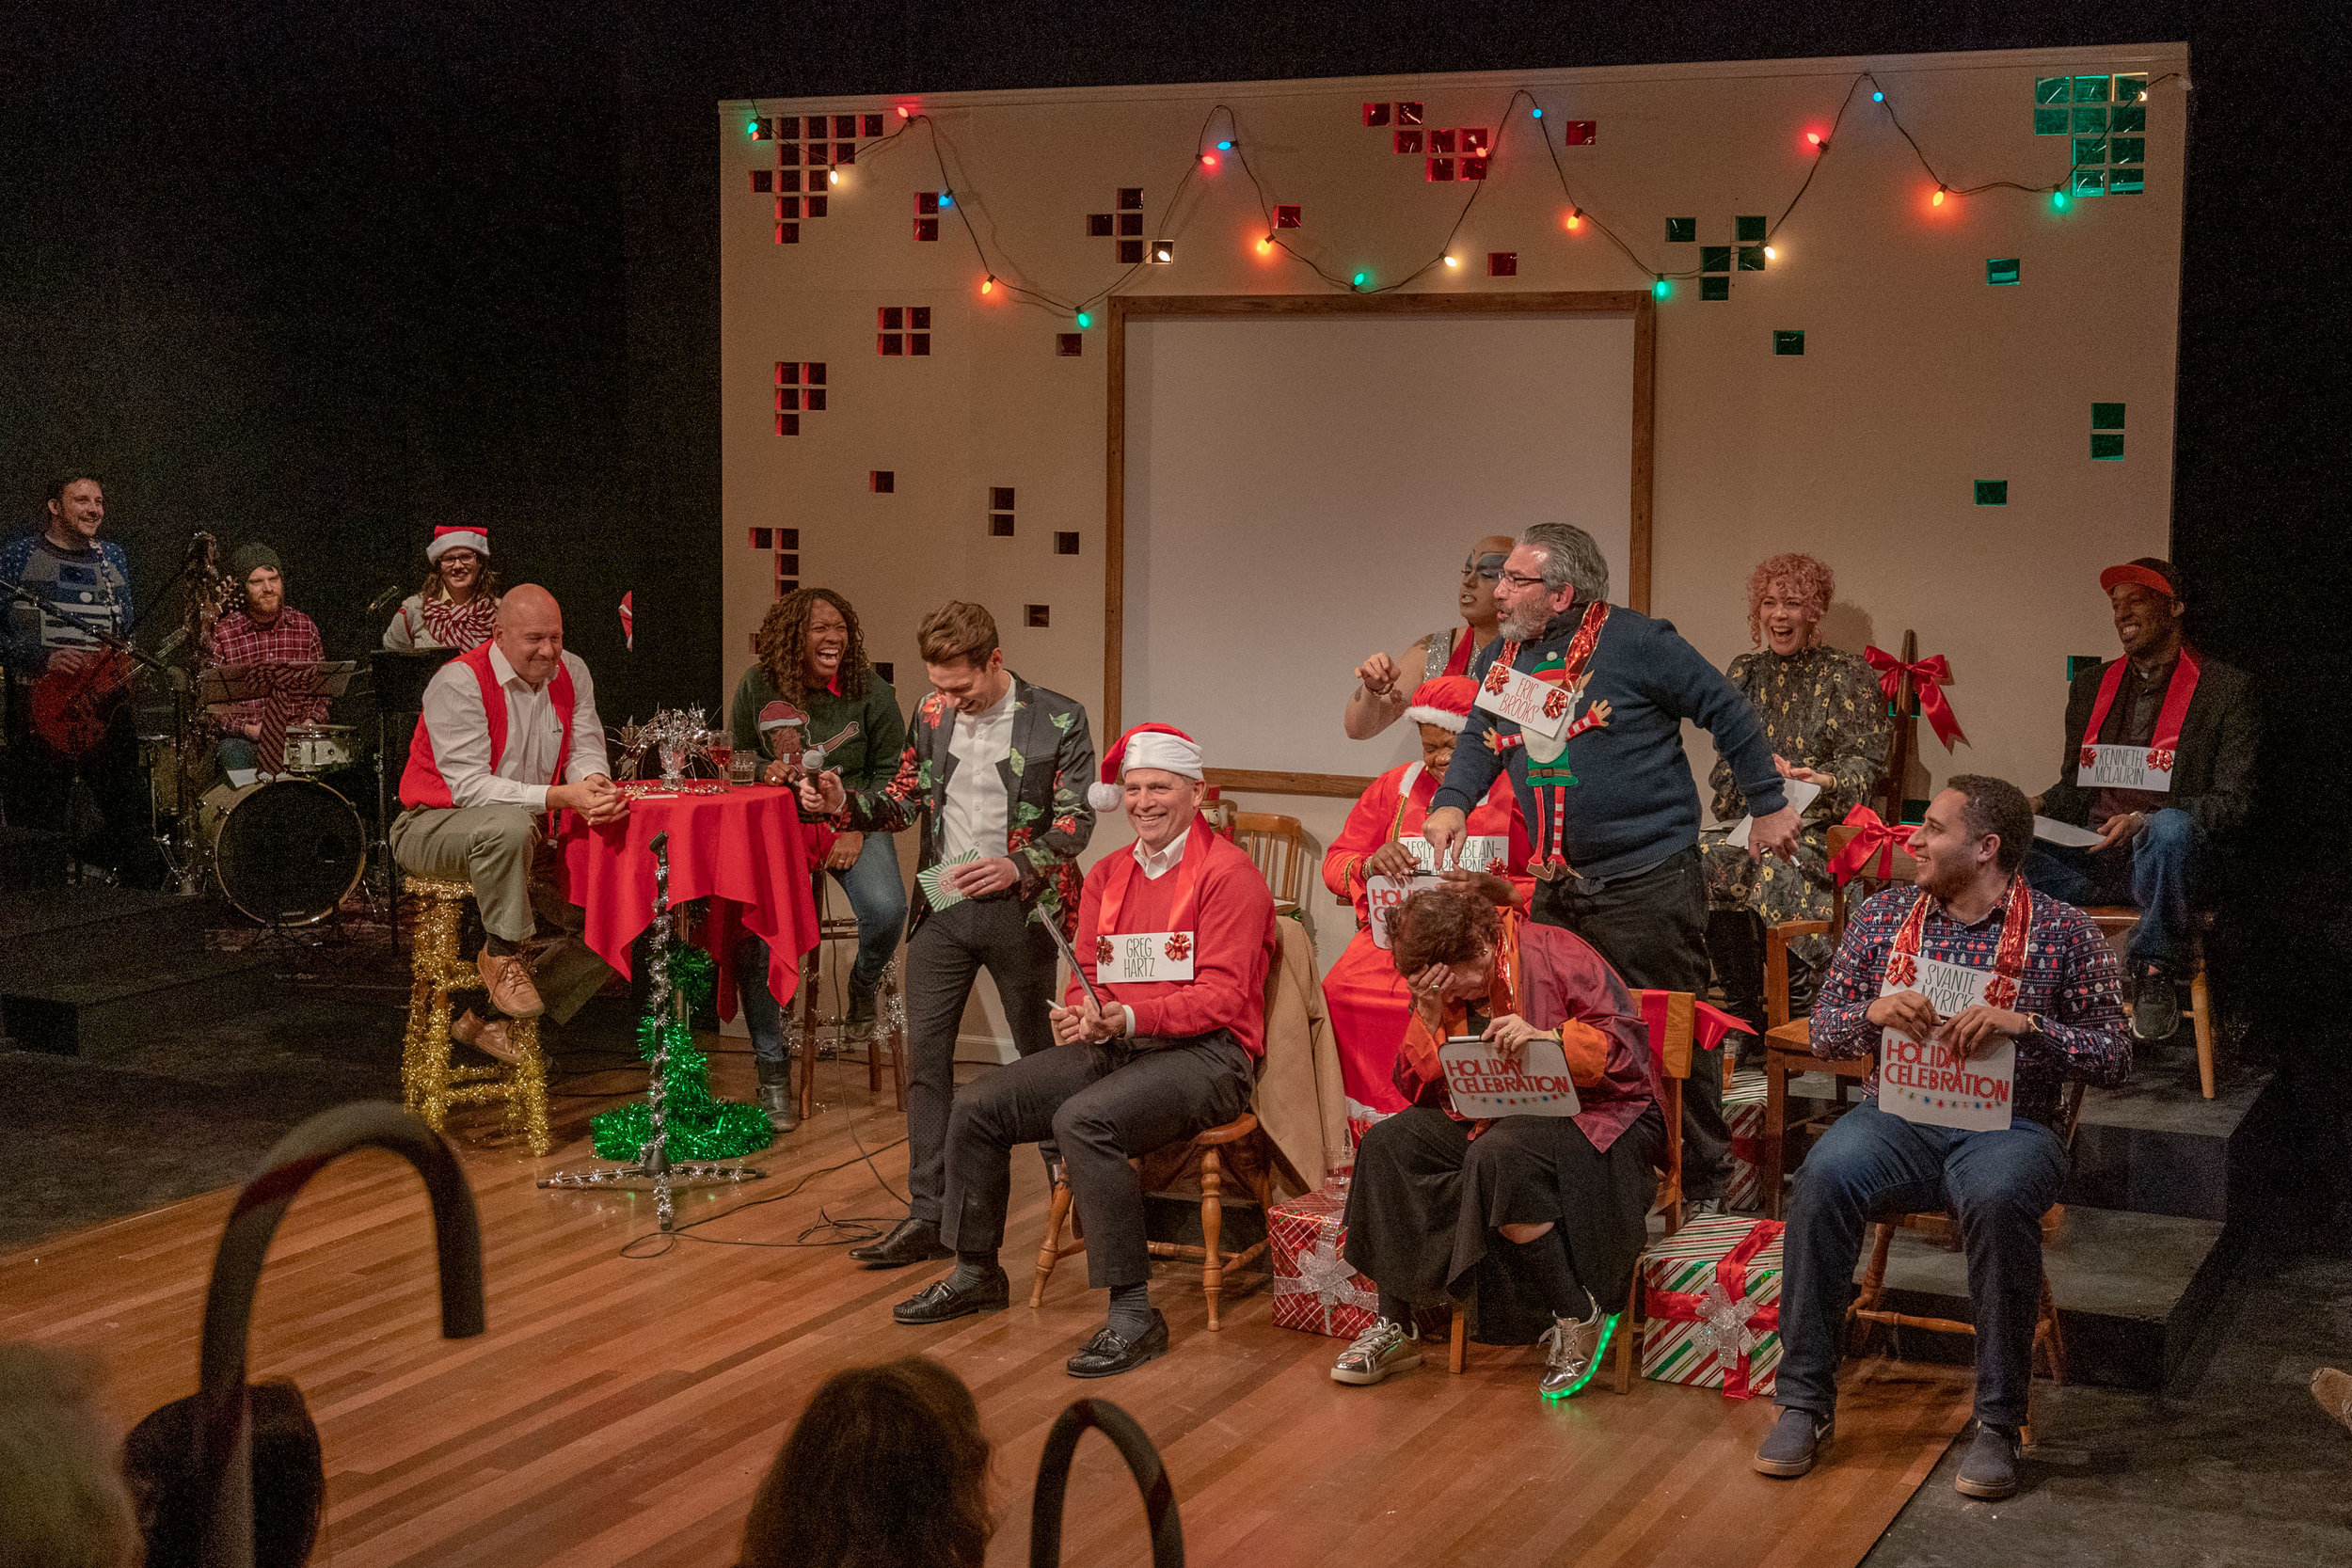 KTC_Holiday_Party_2018-214.jpg